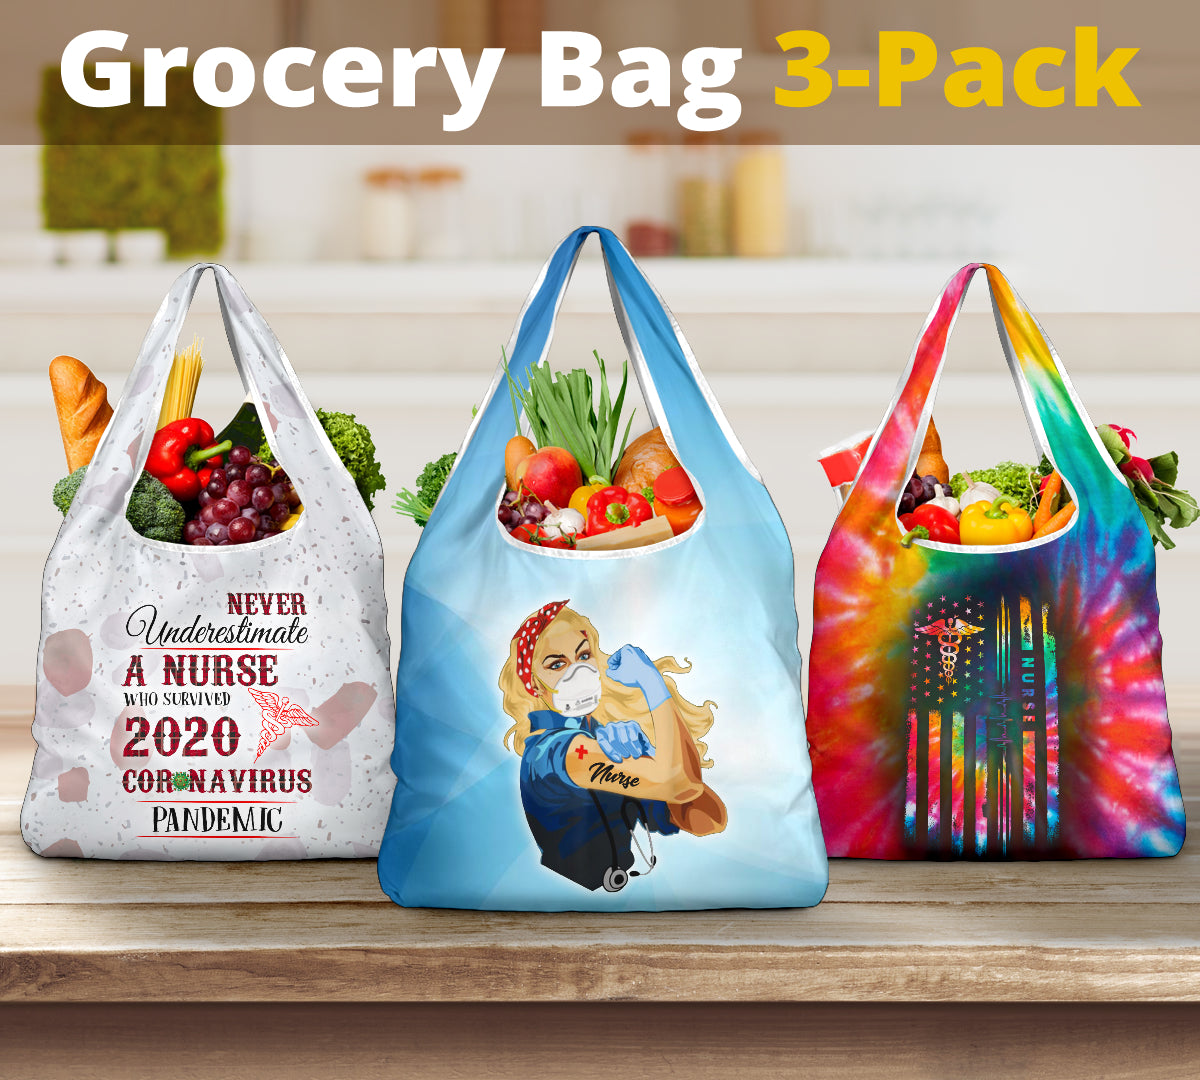 Nurse 2020 Grocery Bag 3-Pack